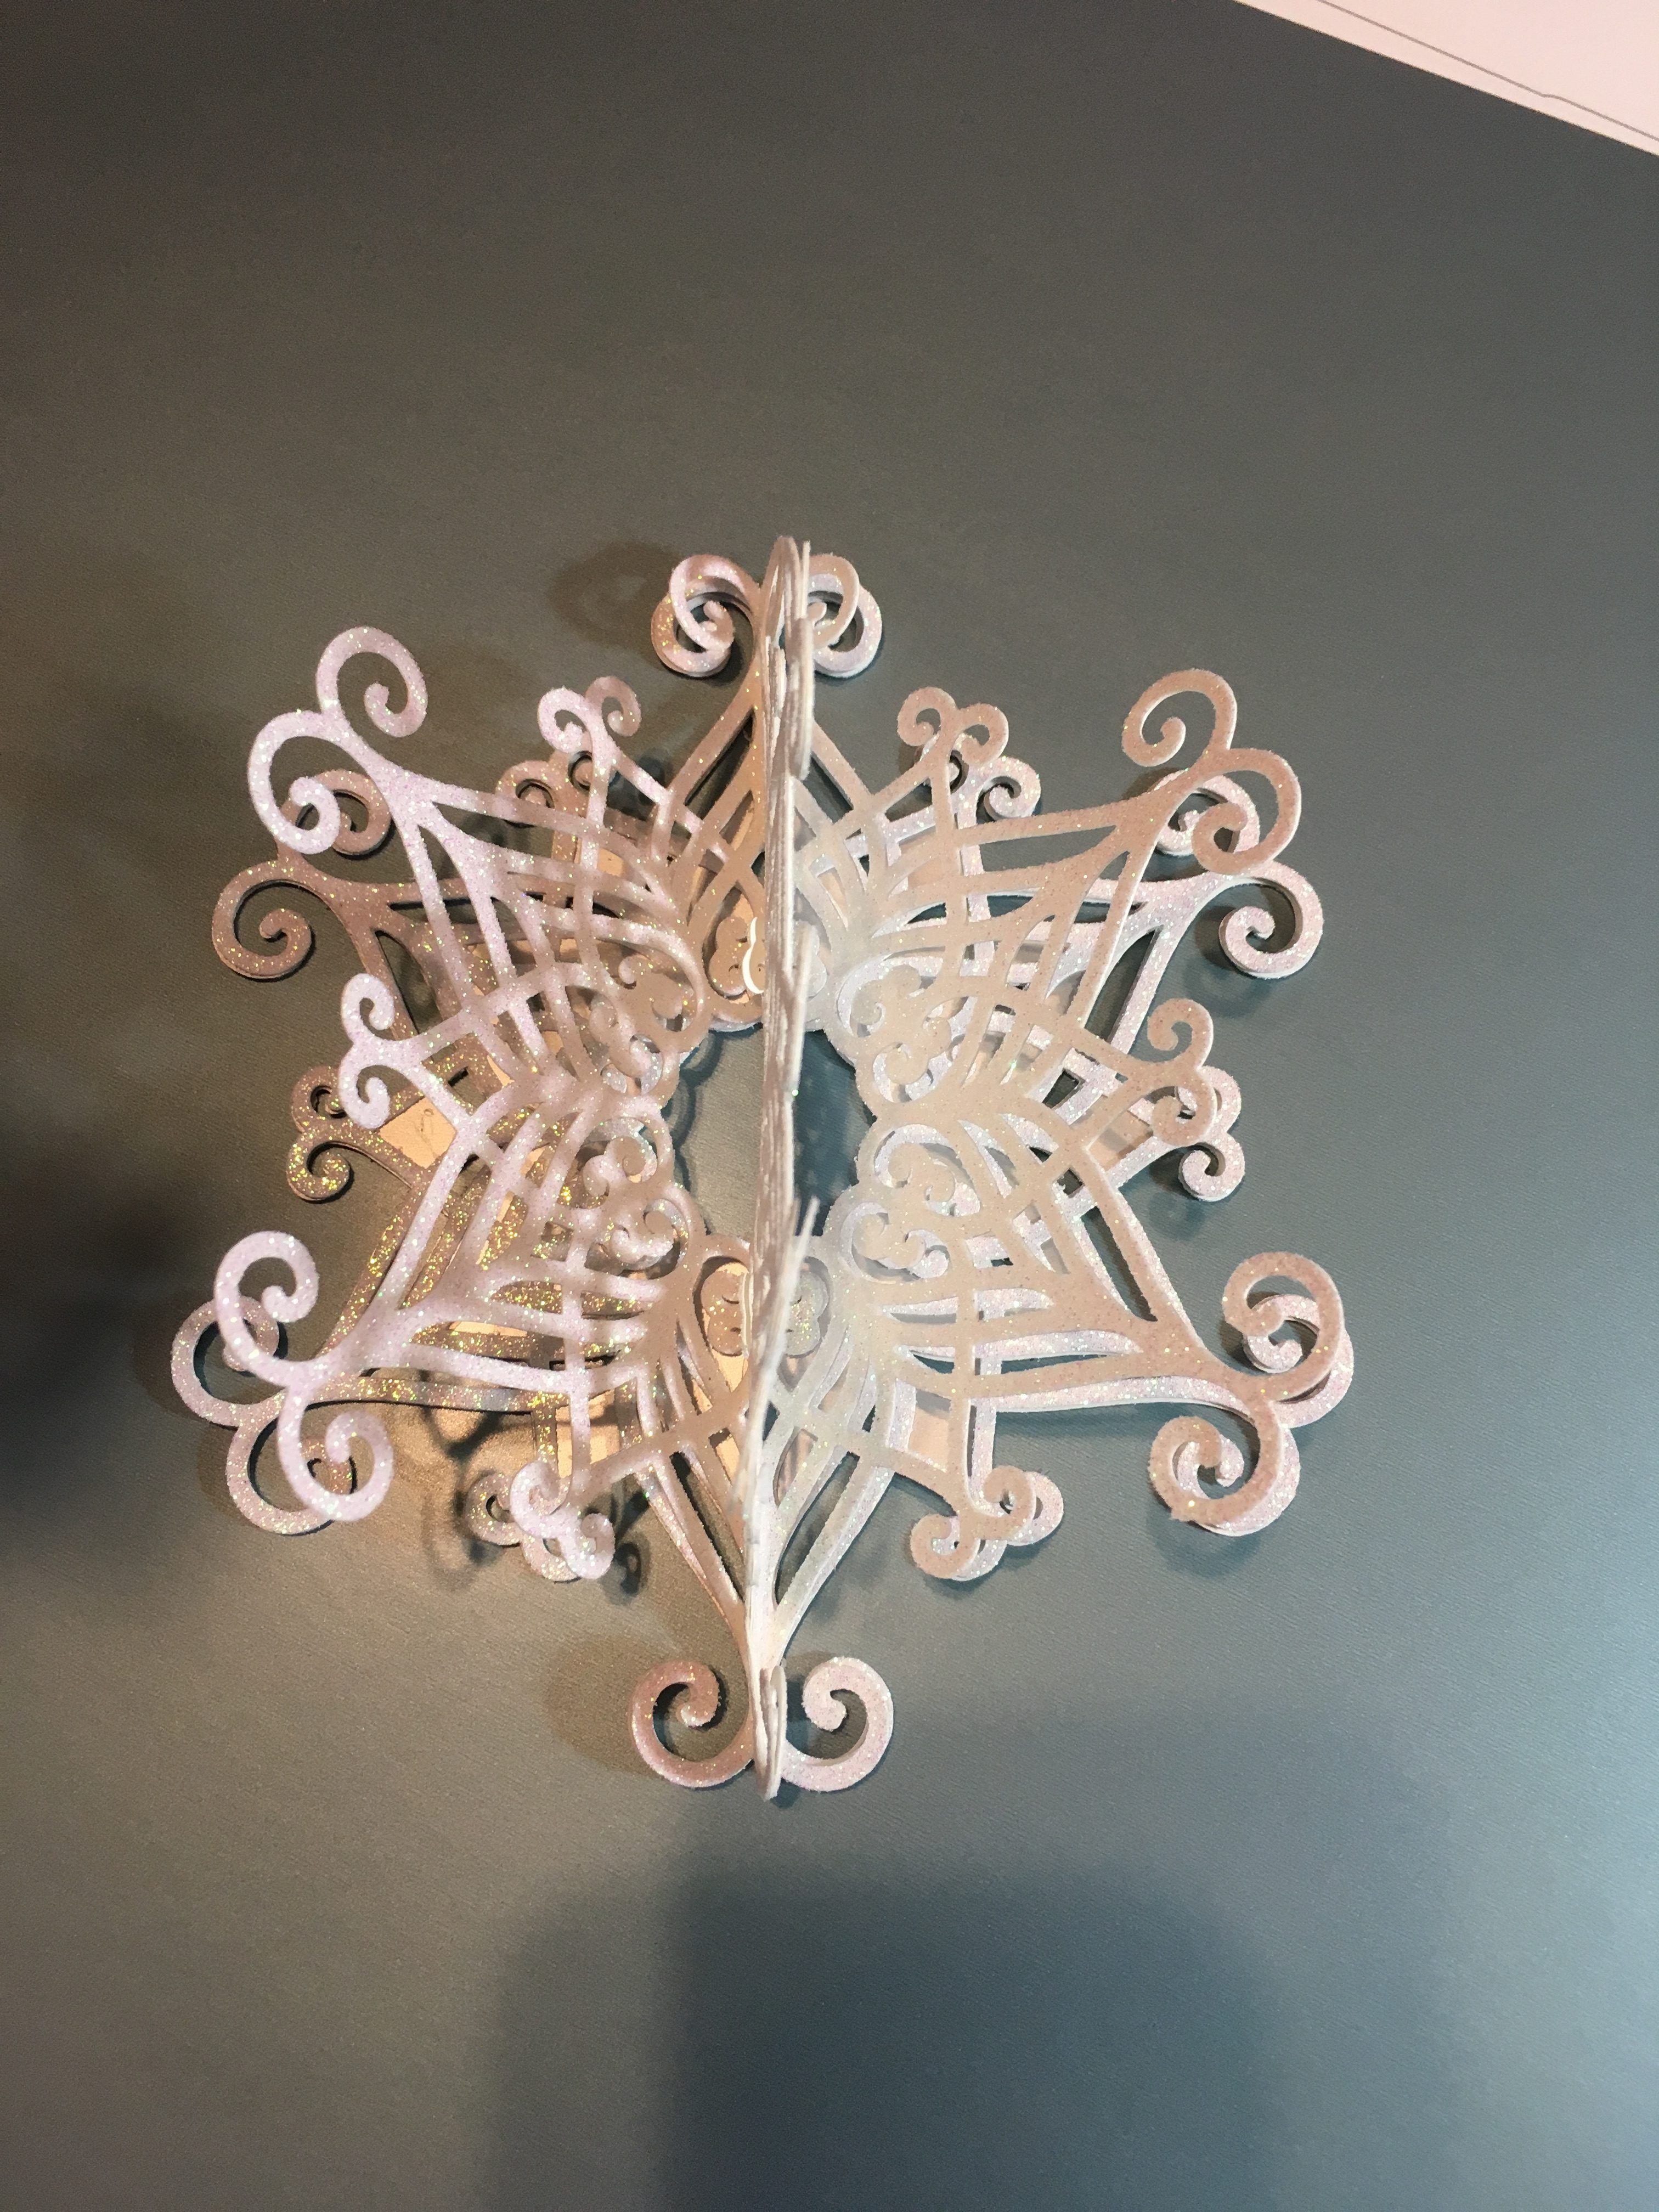 Cricut 3d Snowflake Project The Covered Chipboard Cricut Ornaments 3d Snowflakes Cricut Crafts